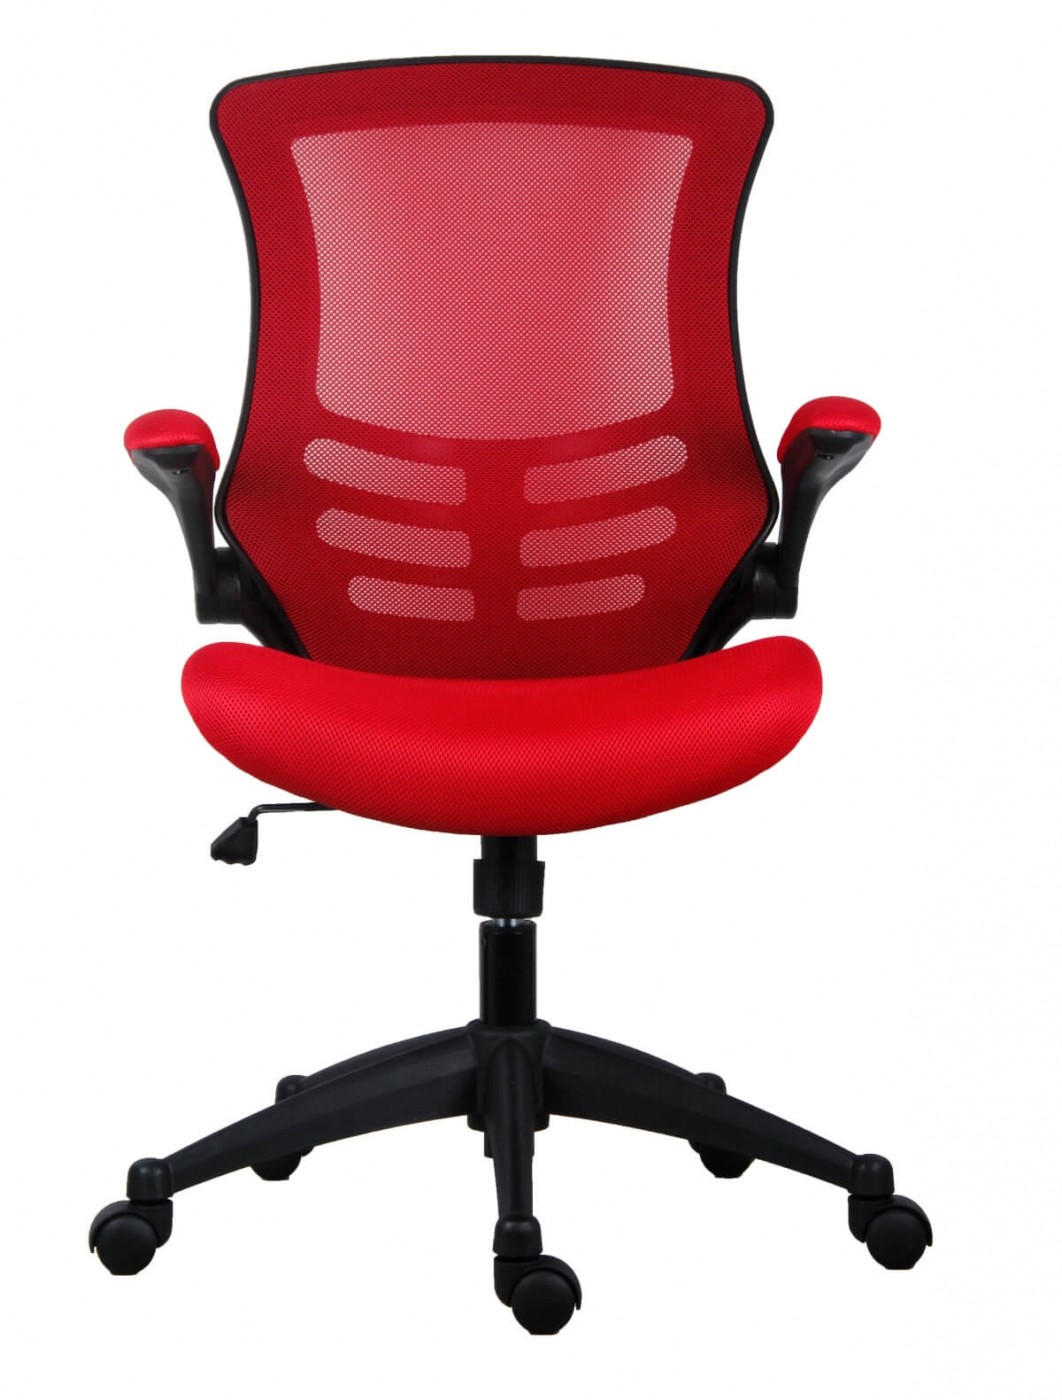 Office Chairs Marlos Mesh Office Chair In Red CH0790RD